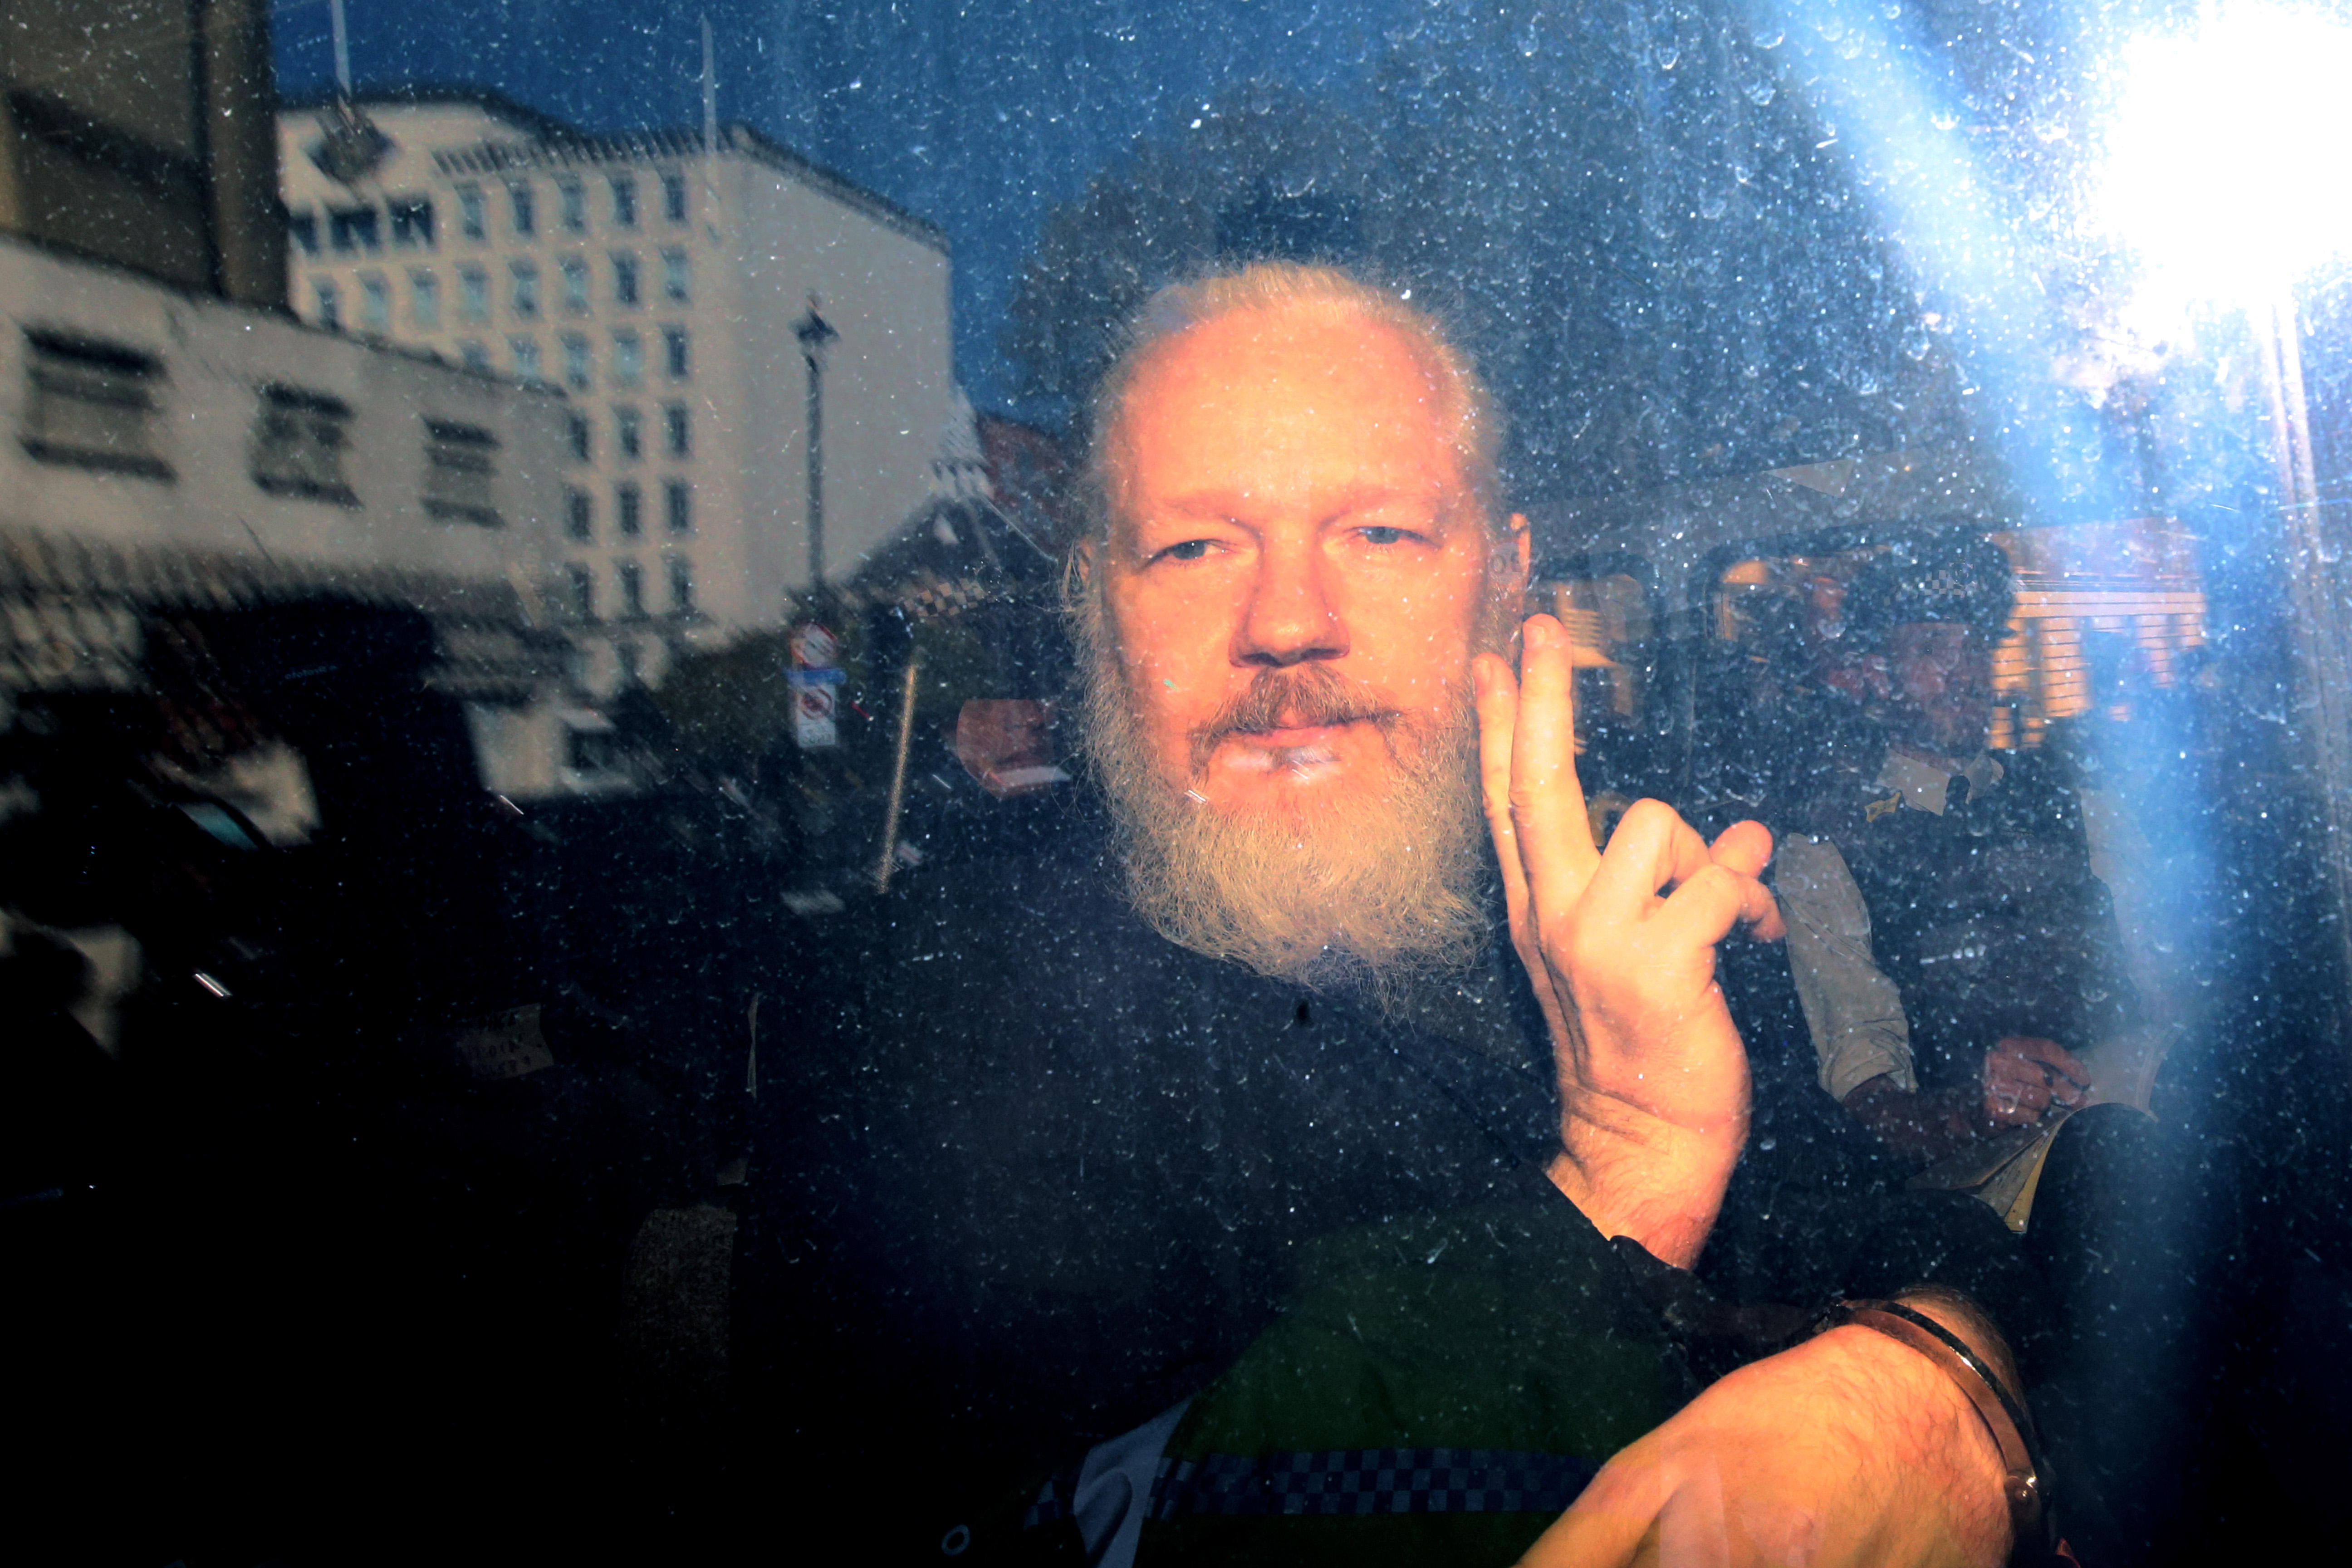 Julian Assange in a police vehicle on April 11, 2019 in London, England